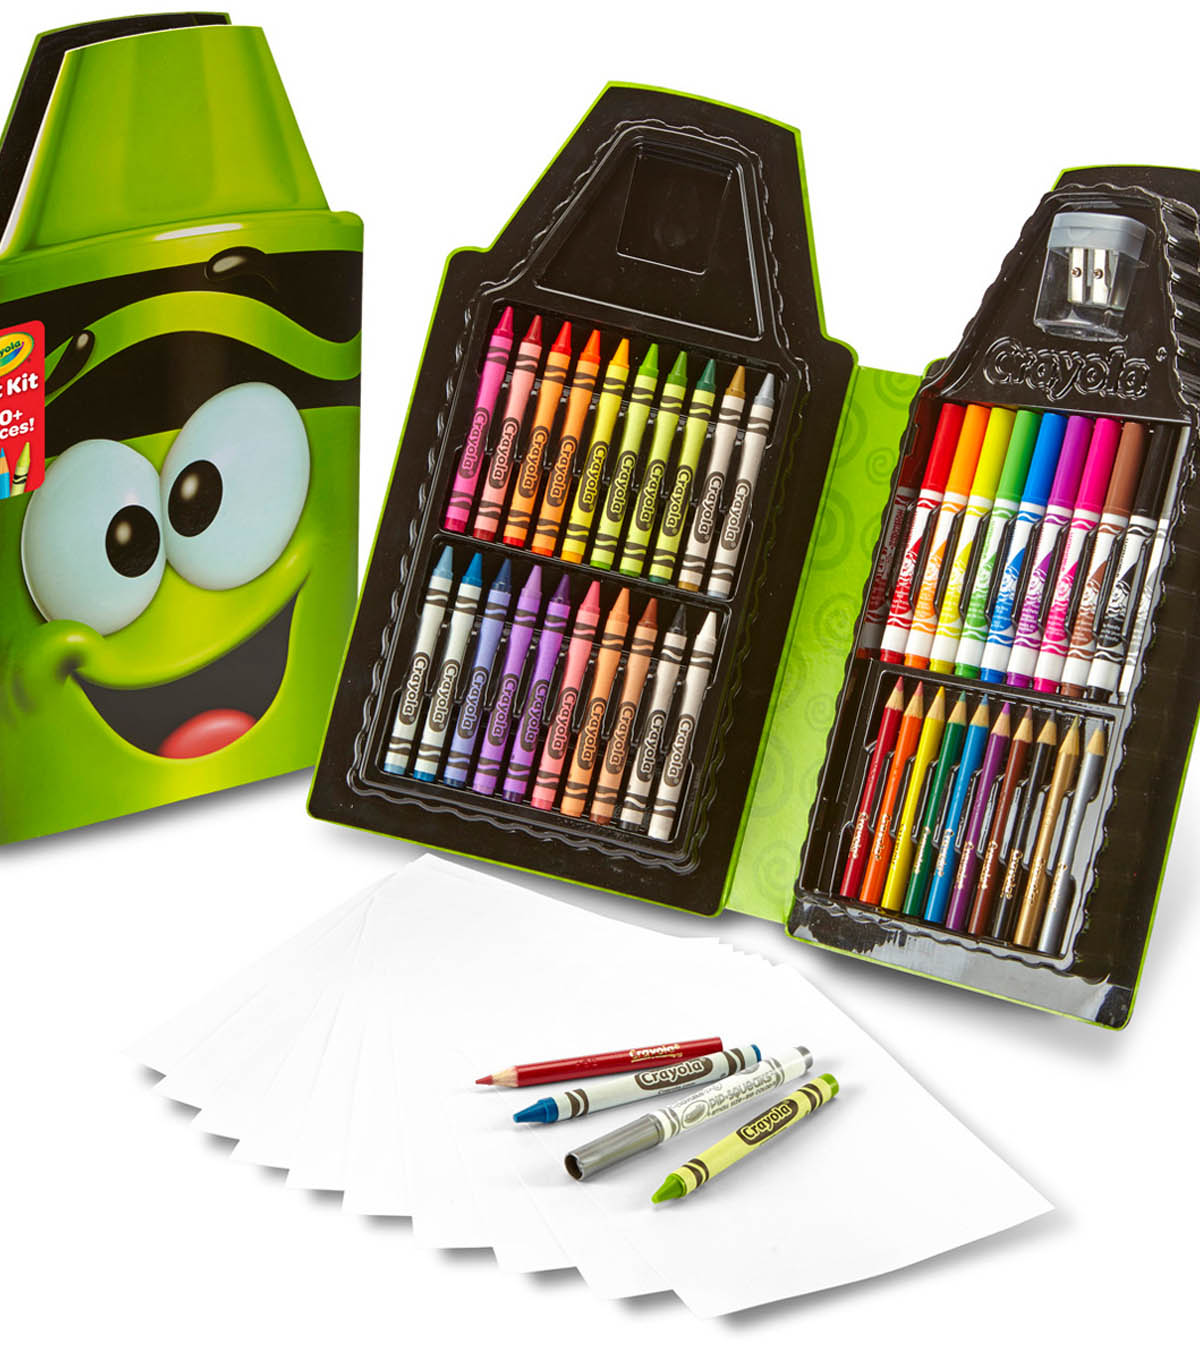 Crayola Tip Art Case-Electric Lime